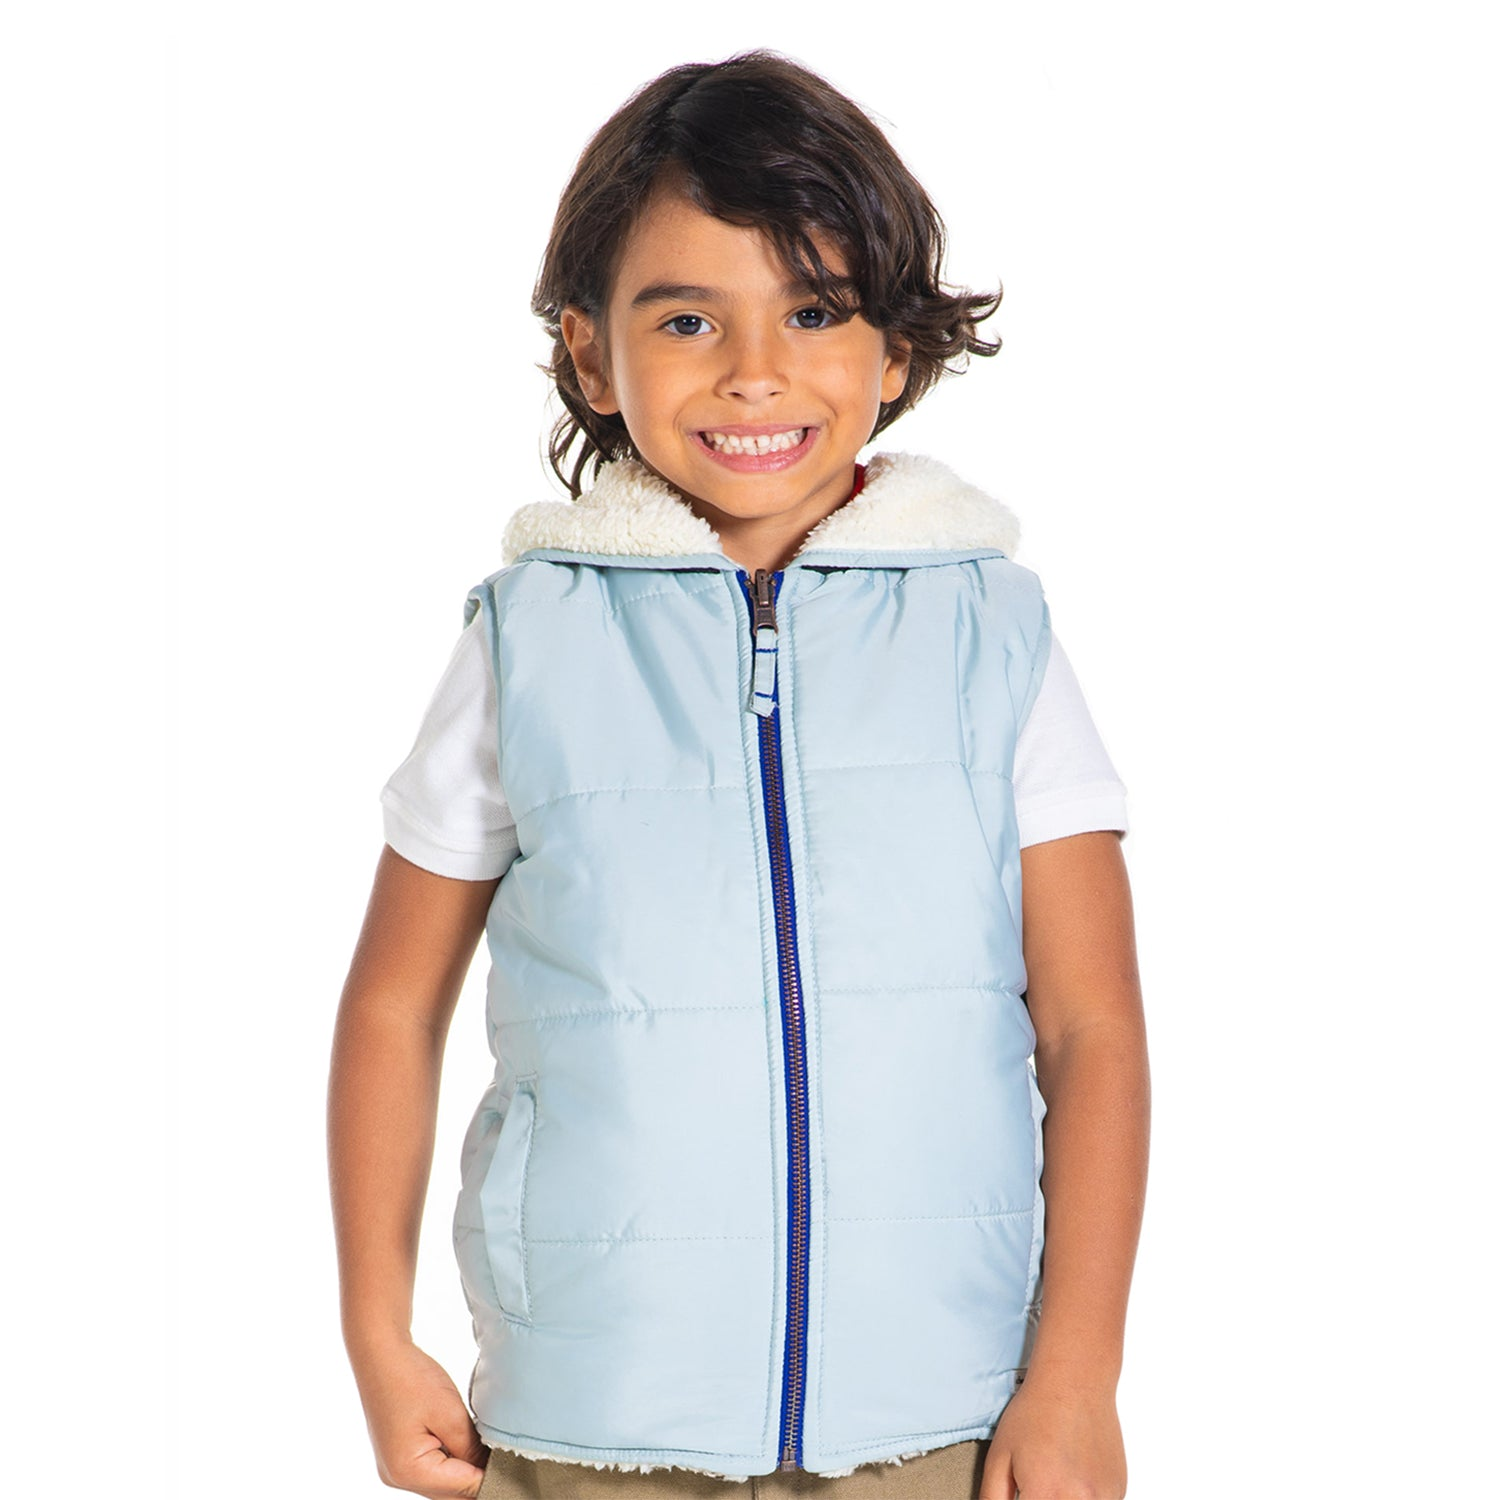 Sleeveless Hooded Regular Fit Reversible Jacket for kids